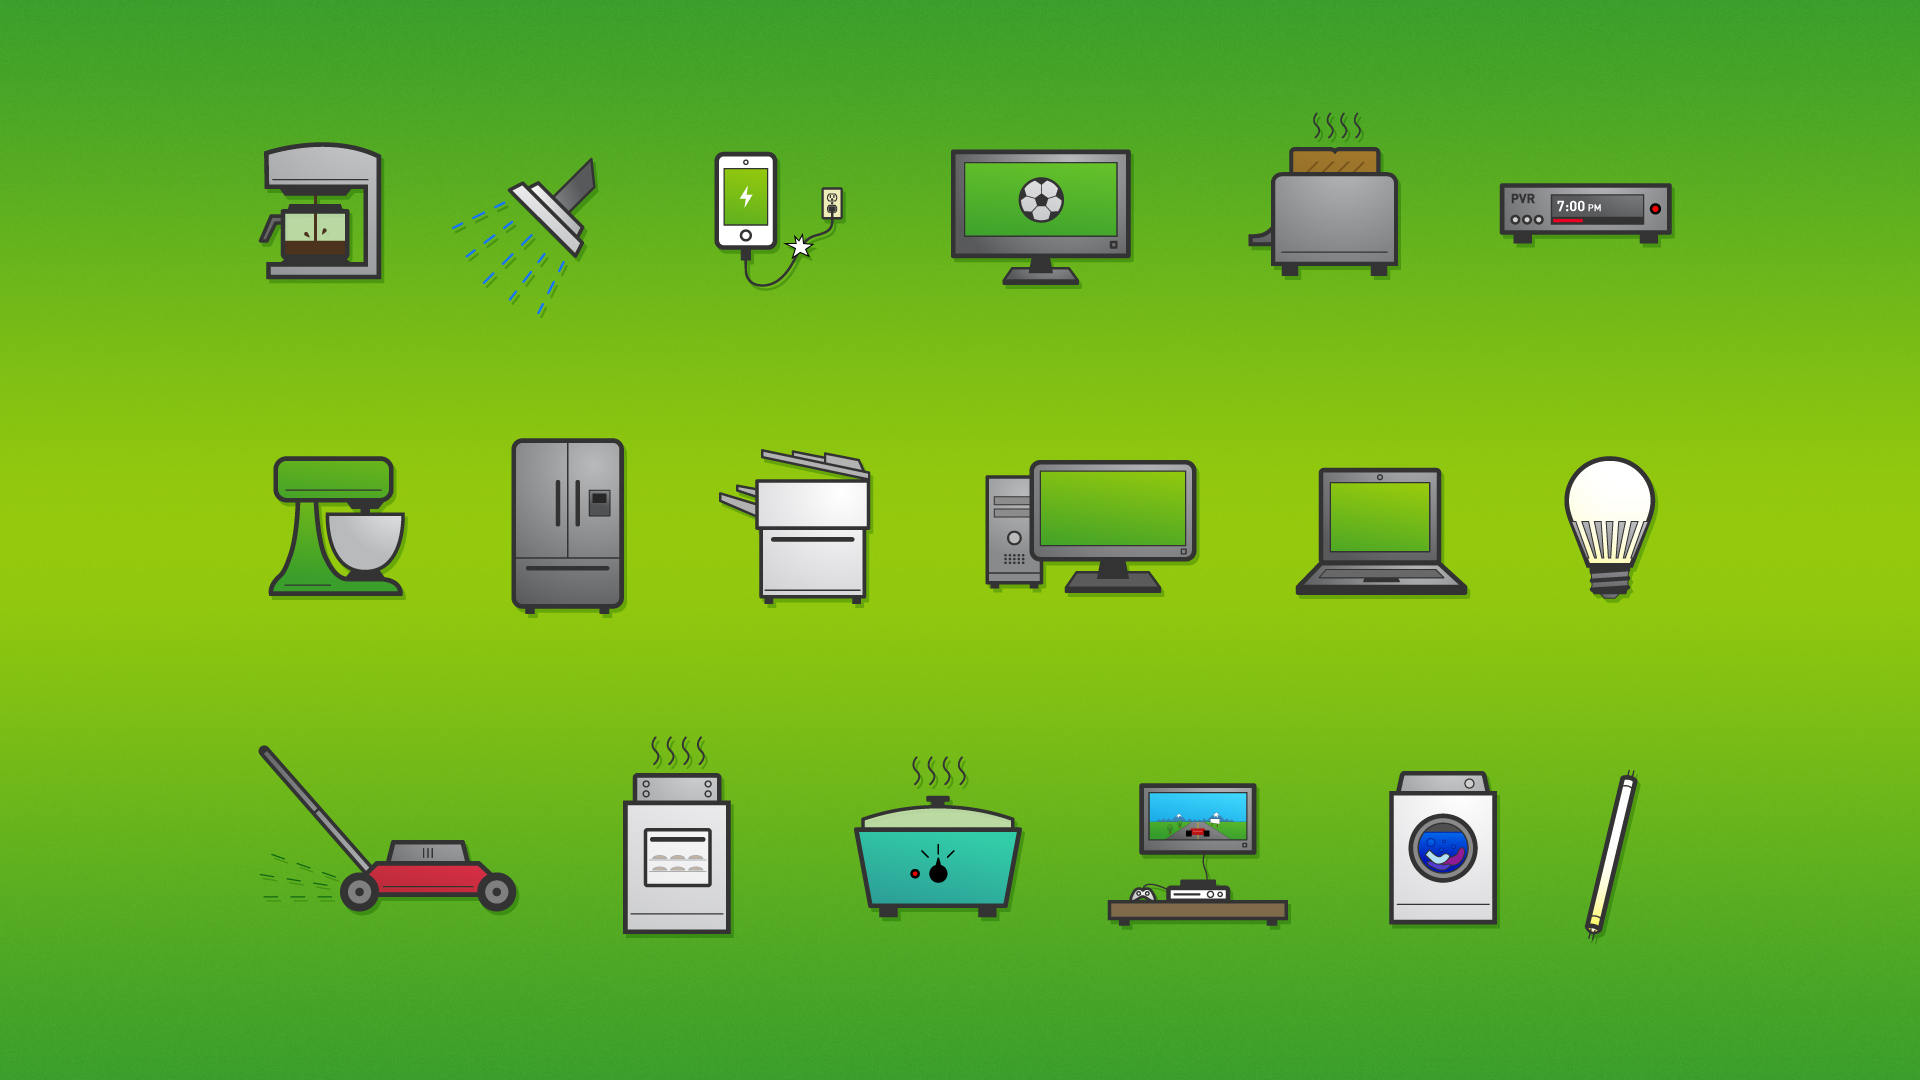 Illustrating icons for this project was really fun!